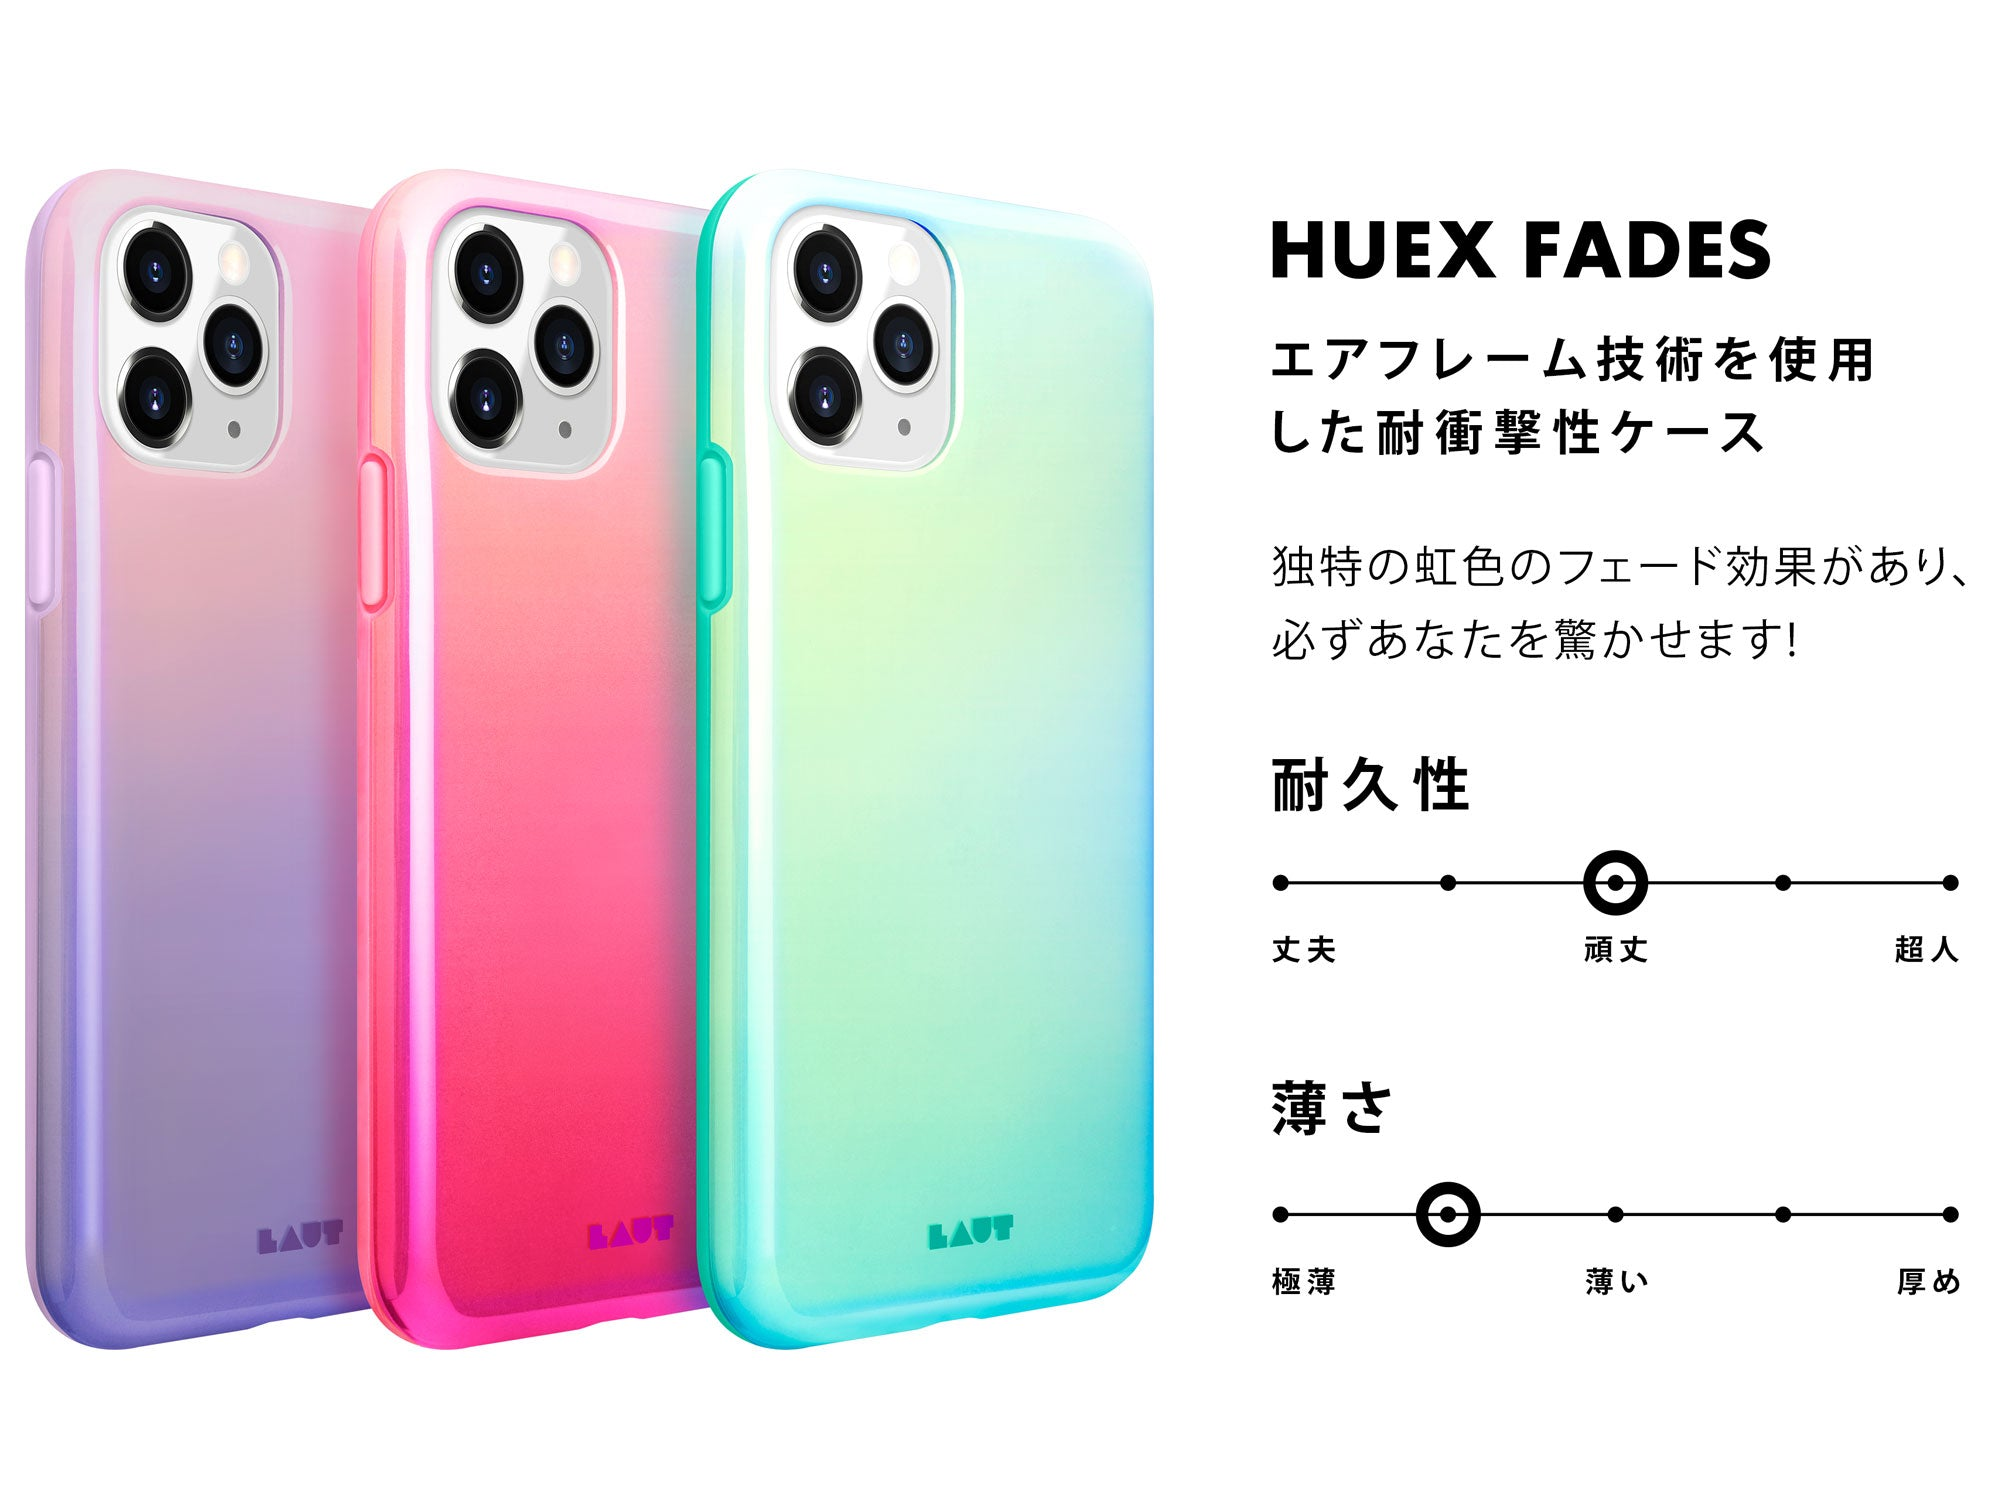 HUEX Fades for iPhone 11 series